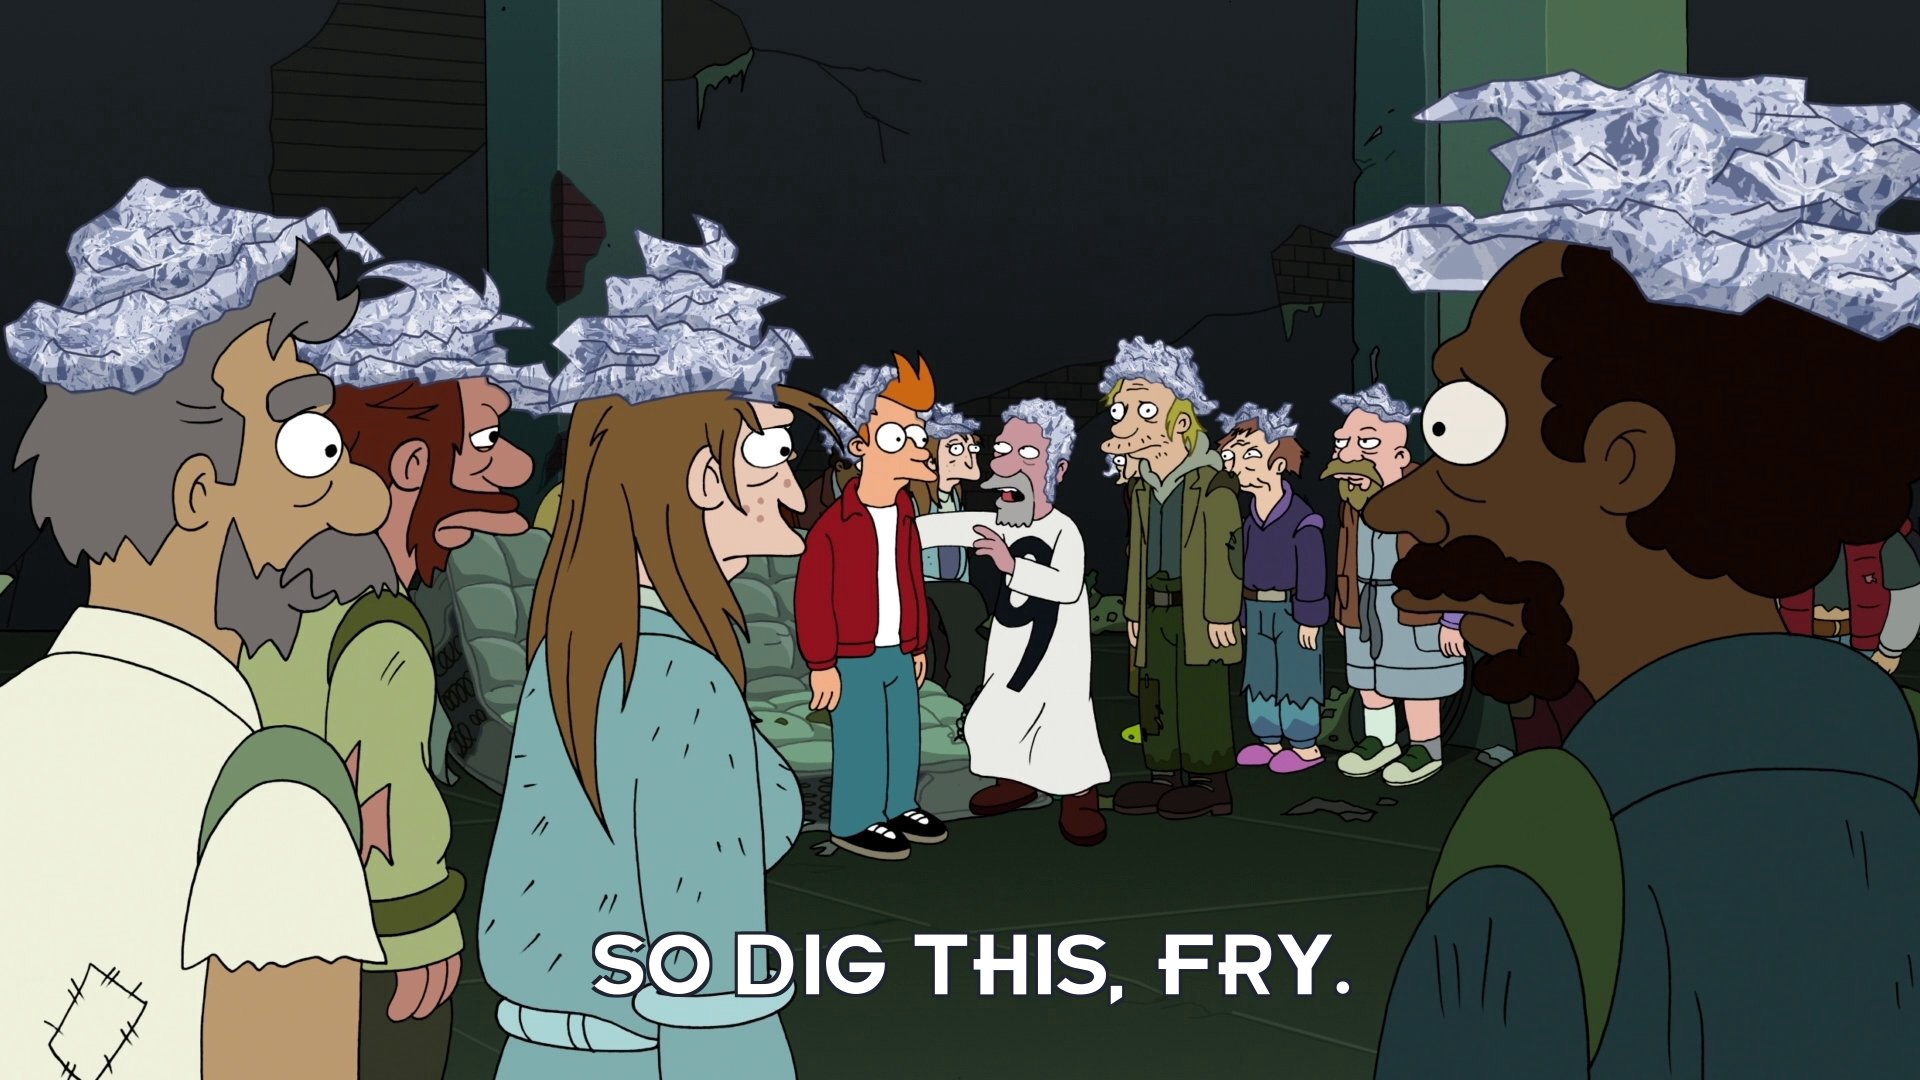 Nine: So dig this, Fry.